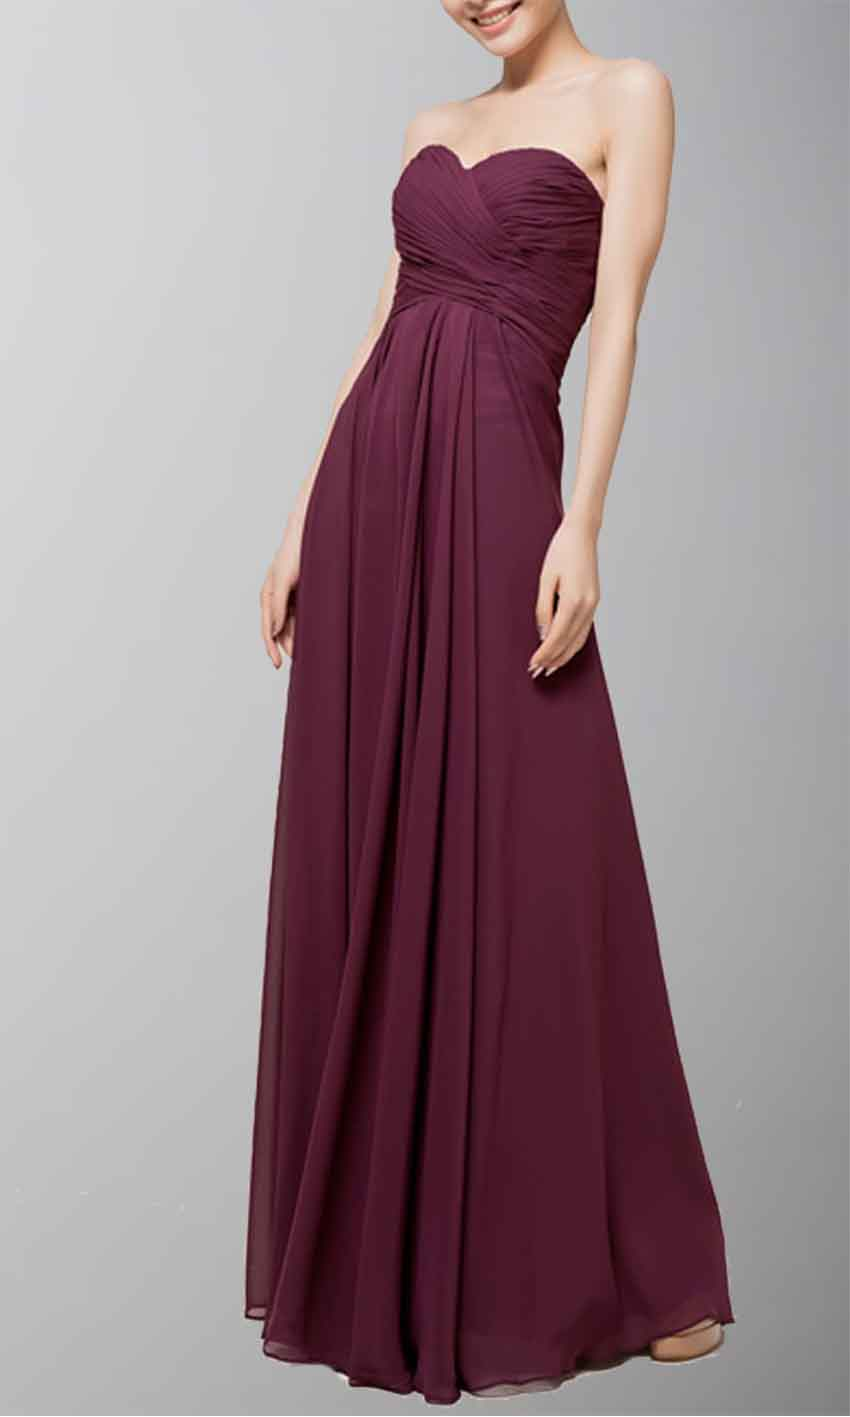 £83.00 : cheap prom dresses uk, bridesmaid dresses, 2014 prom & evening dresses, look for cheap elegant prom dresses 2014, cocktail gowns, or dresses for special occasions? kissprom.co.uk offers various bridesmaid dresses, evening dress, free shipping to uk etc.